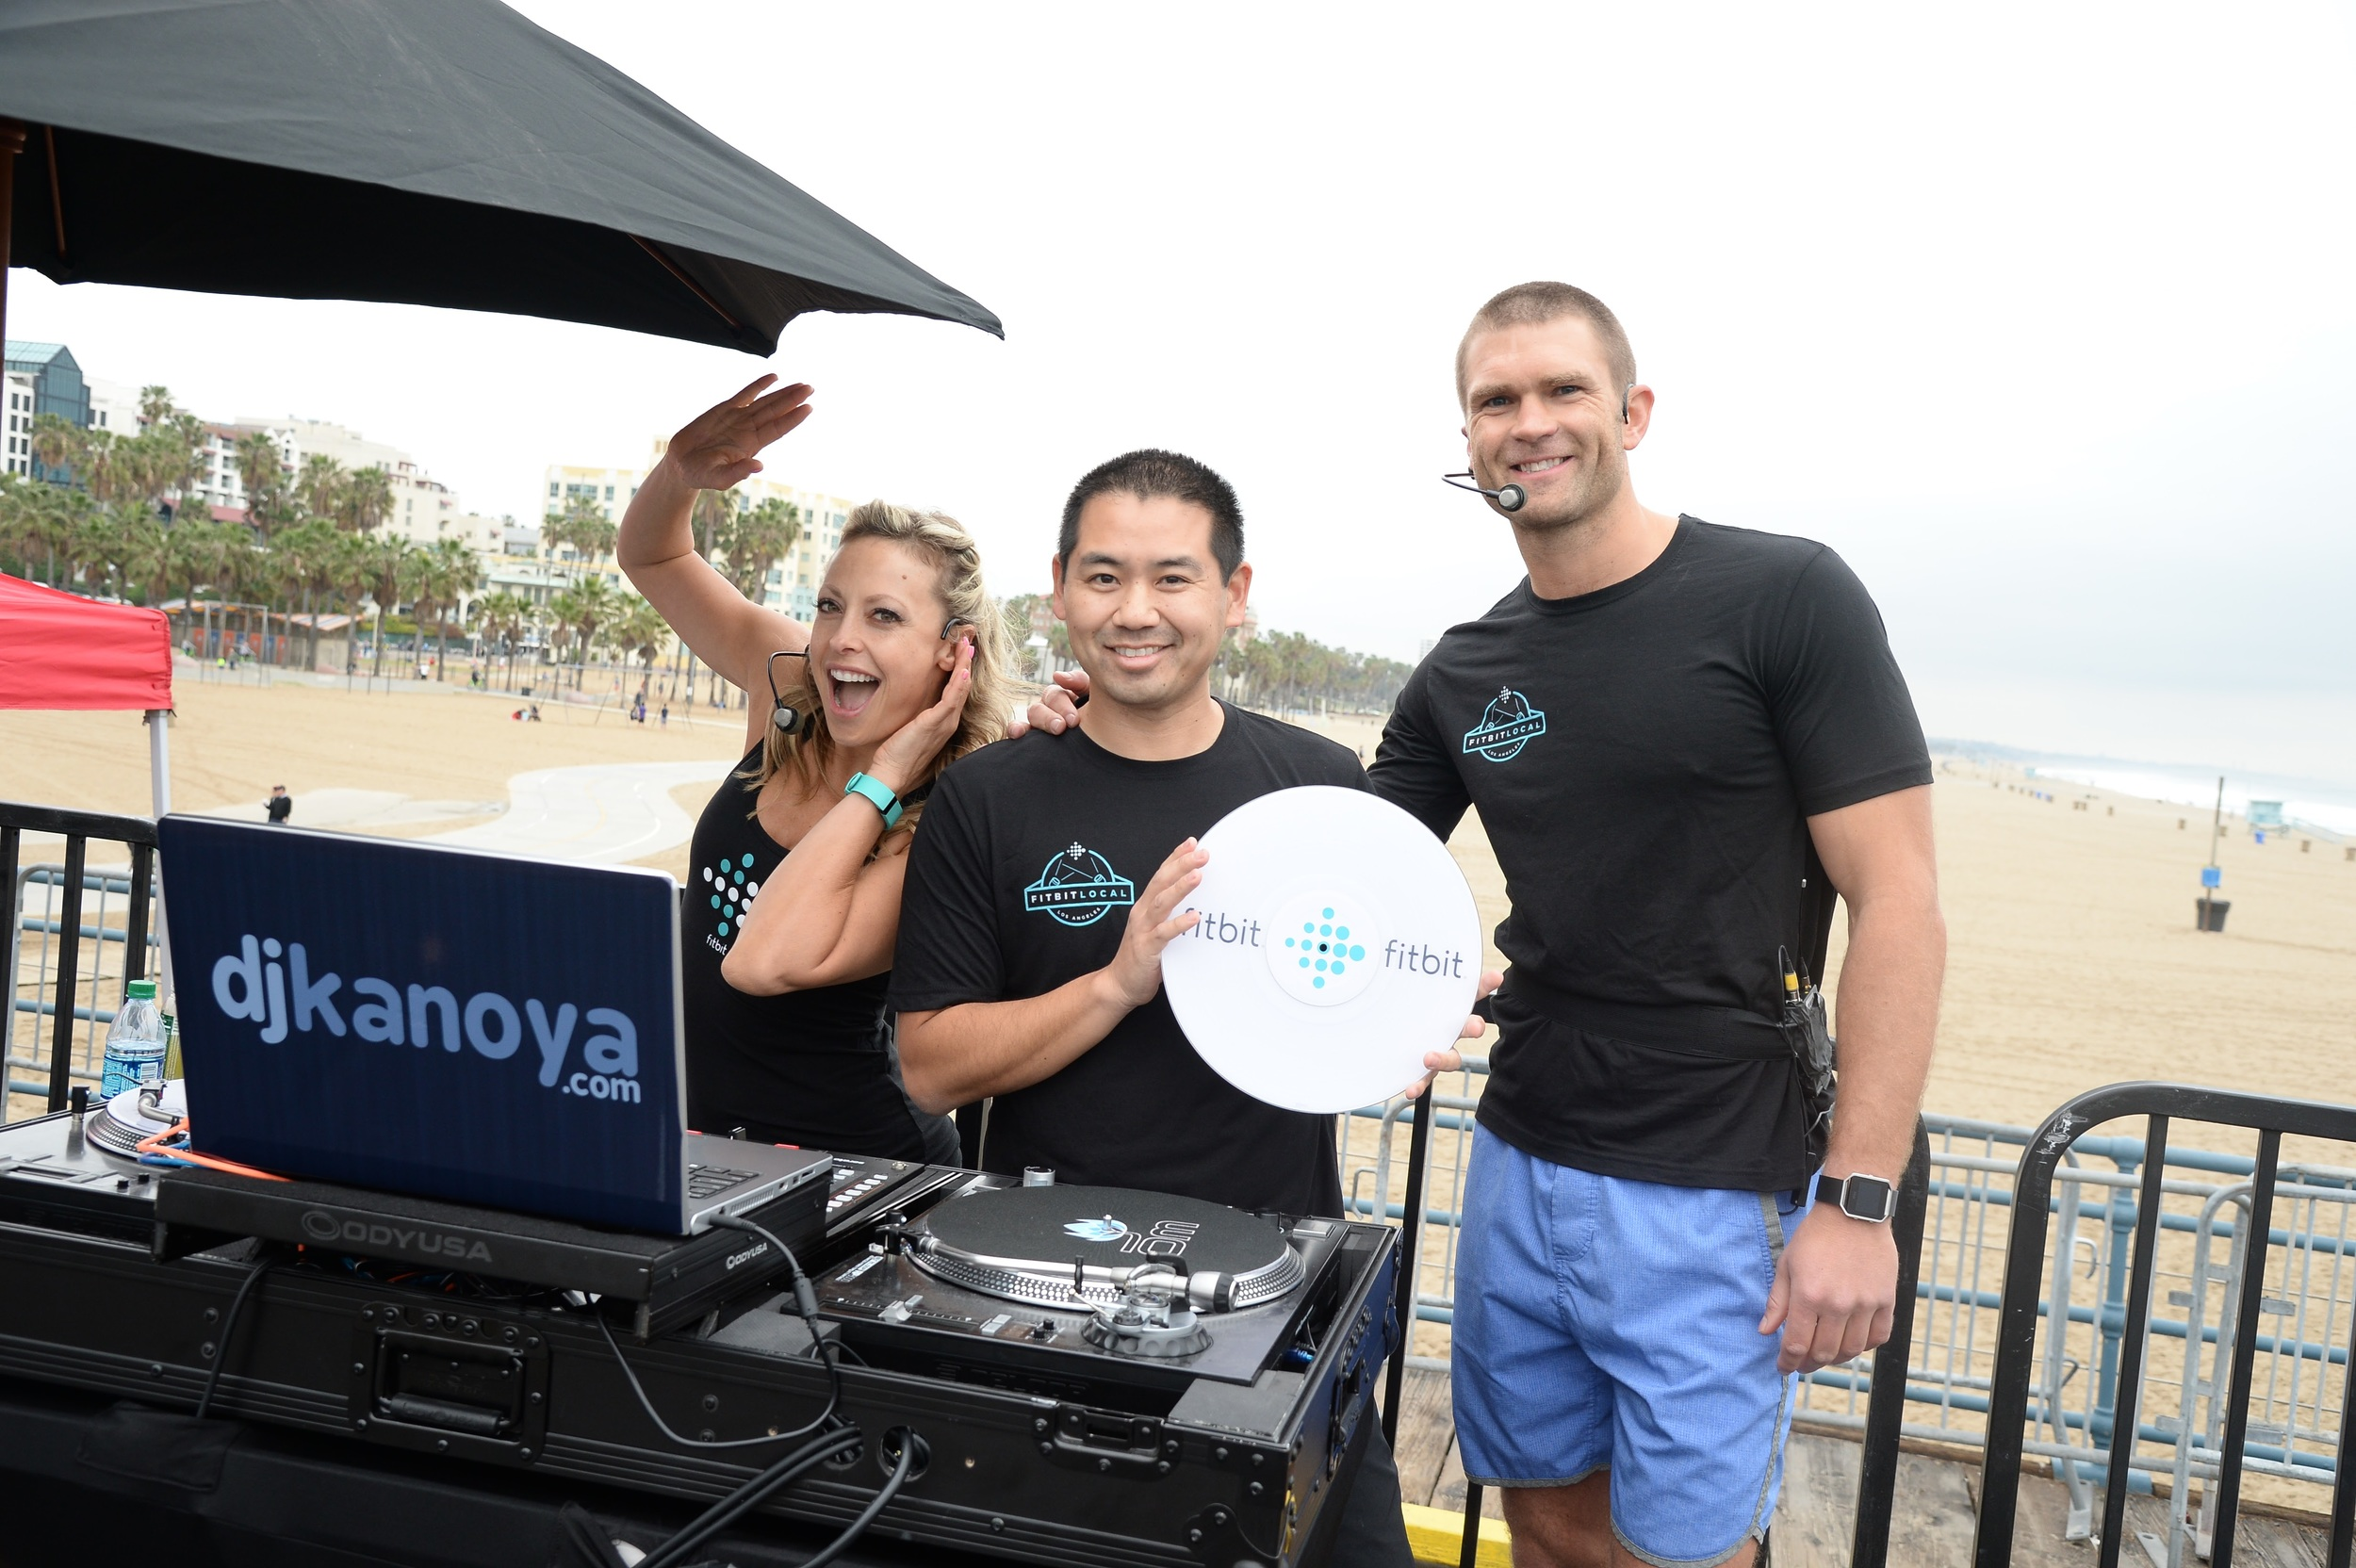 DJ Justin Kanoya provides the beats for the Fitbit Local event in Santa Monica.